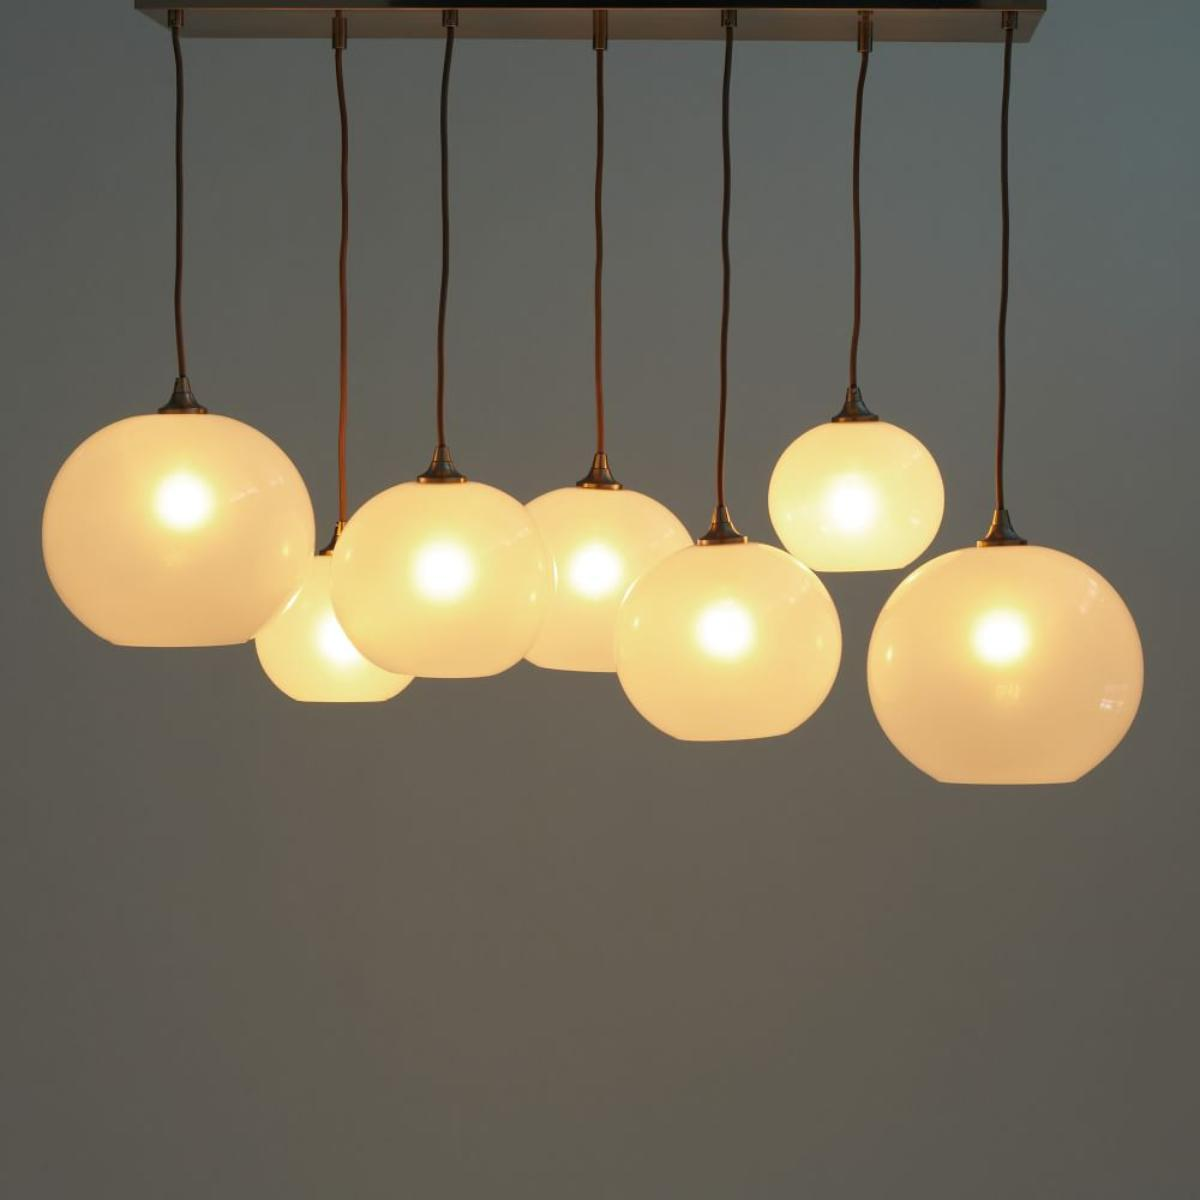 Modern Interior Lighting Design with West Elm Chandelier: How To Take Down Chandelier | West Elm Chandelier | Modern Contemporary Chandelier